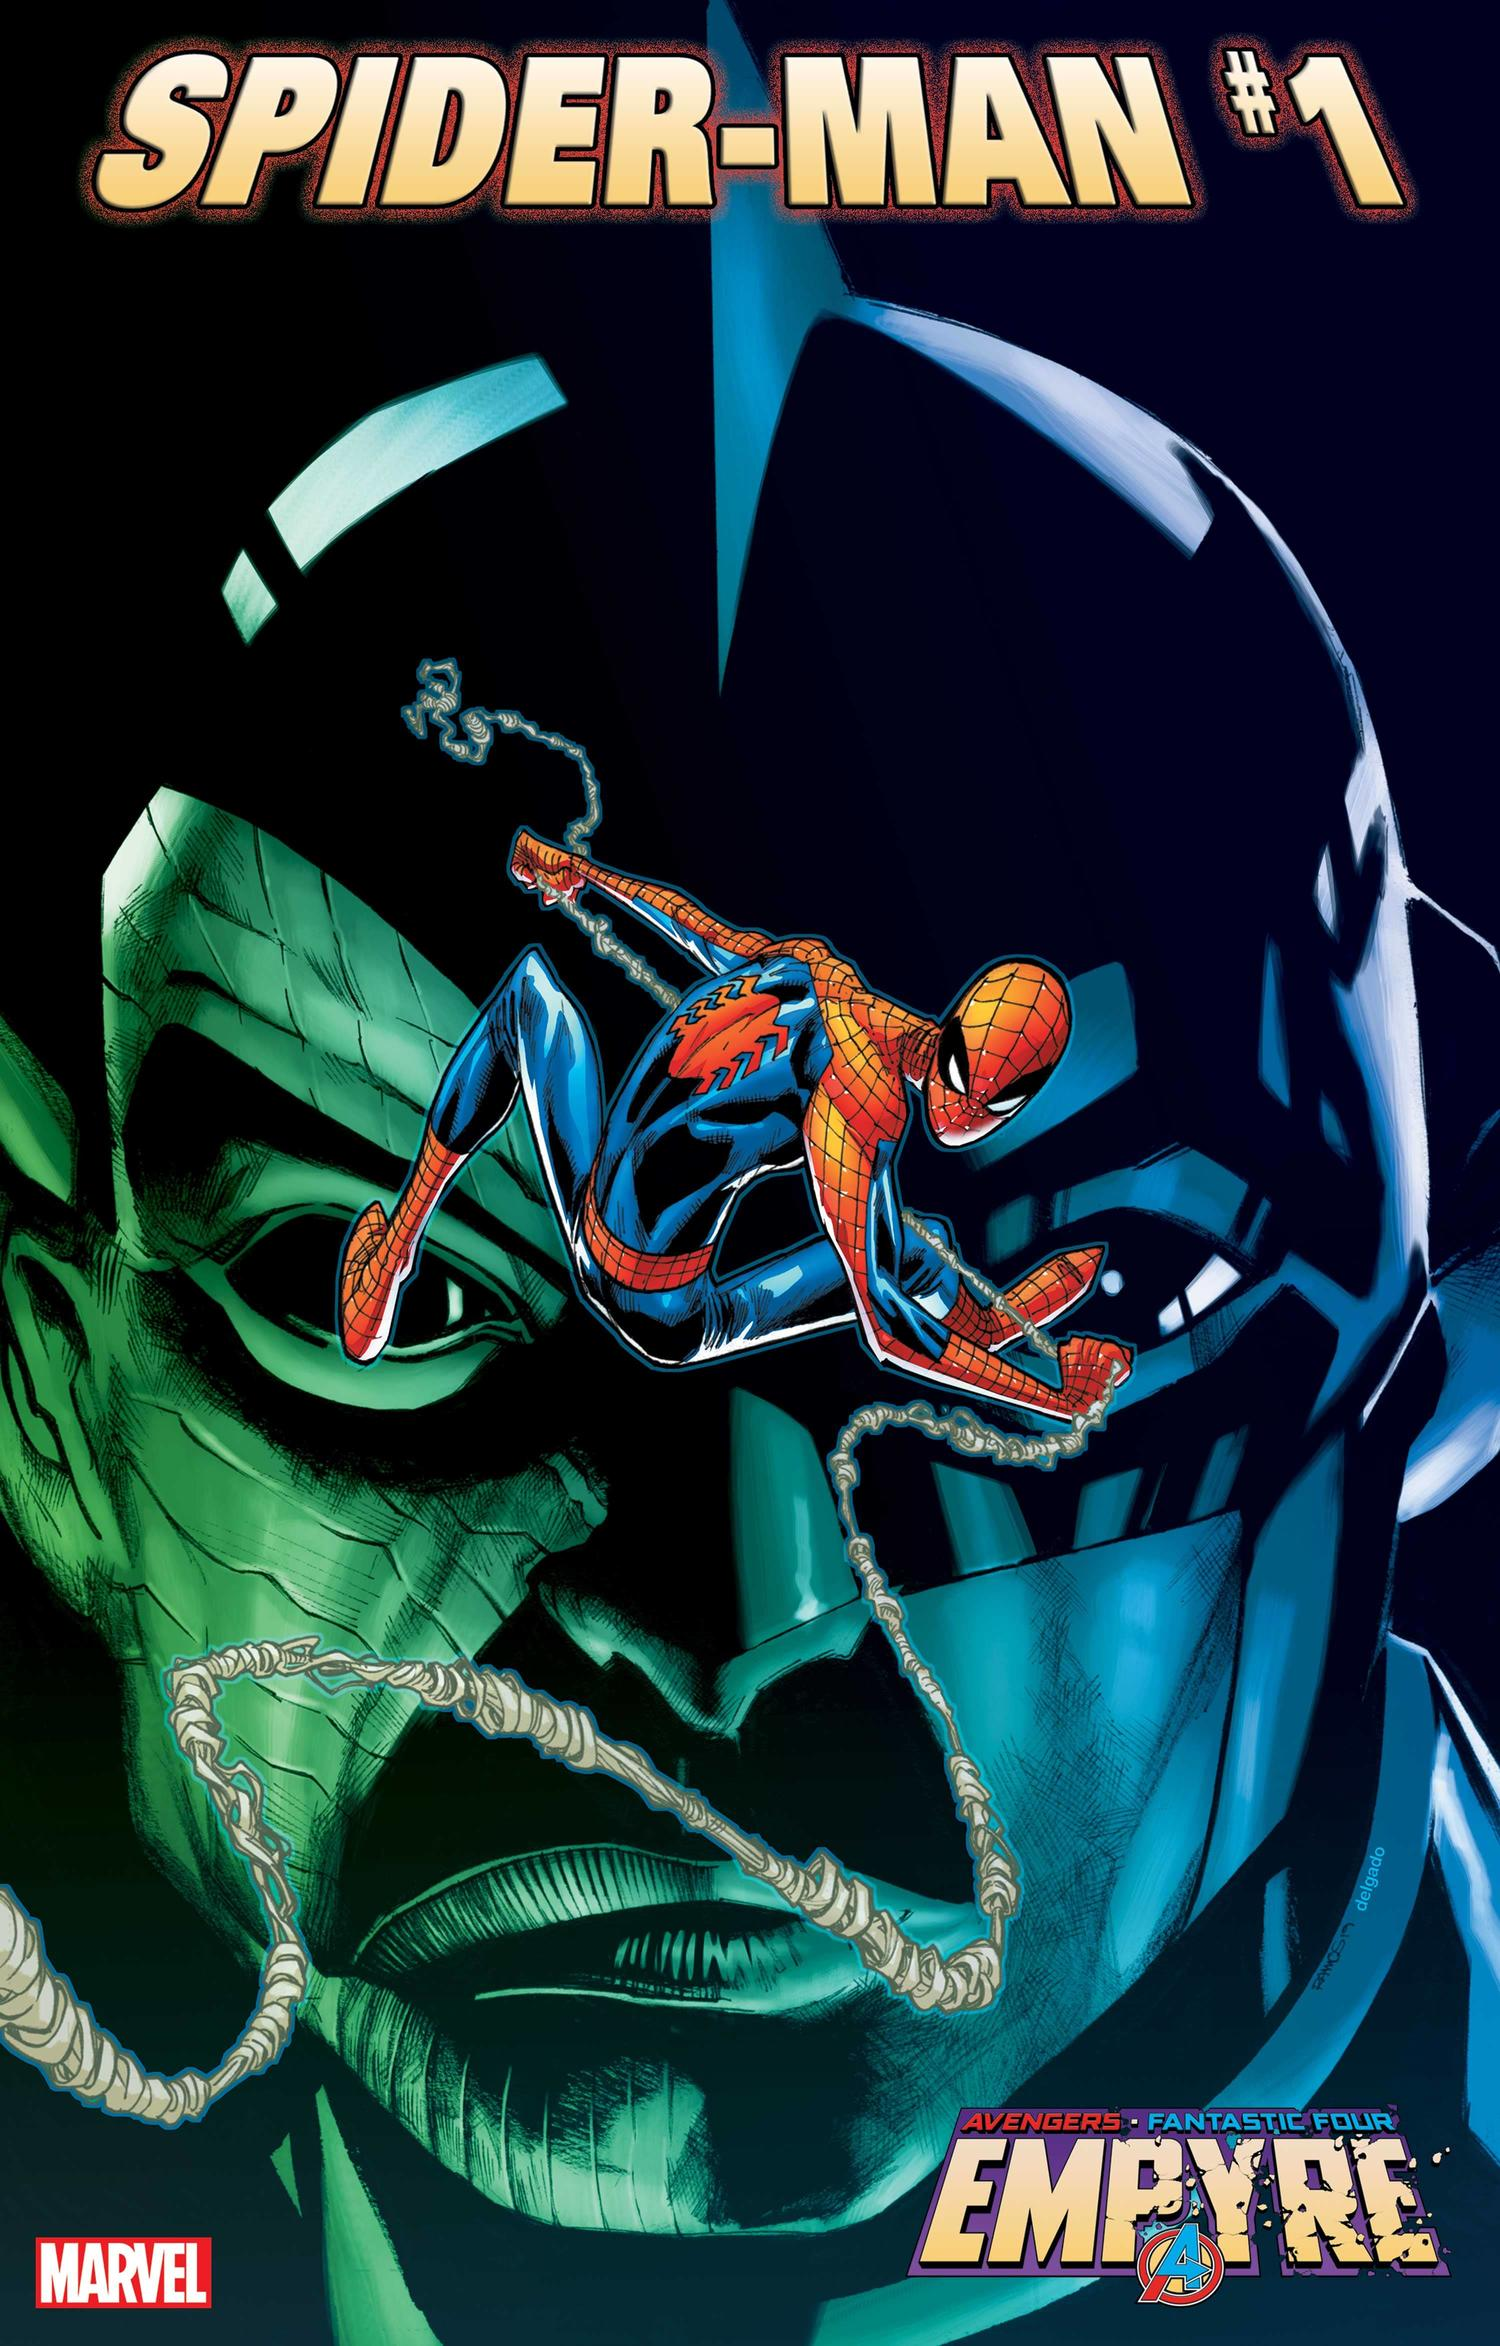 EMPYRE: SPIDER-MAN #1 cover by Humberto Ramos